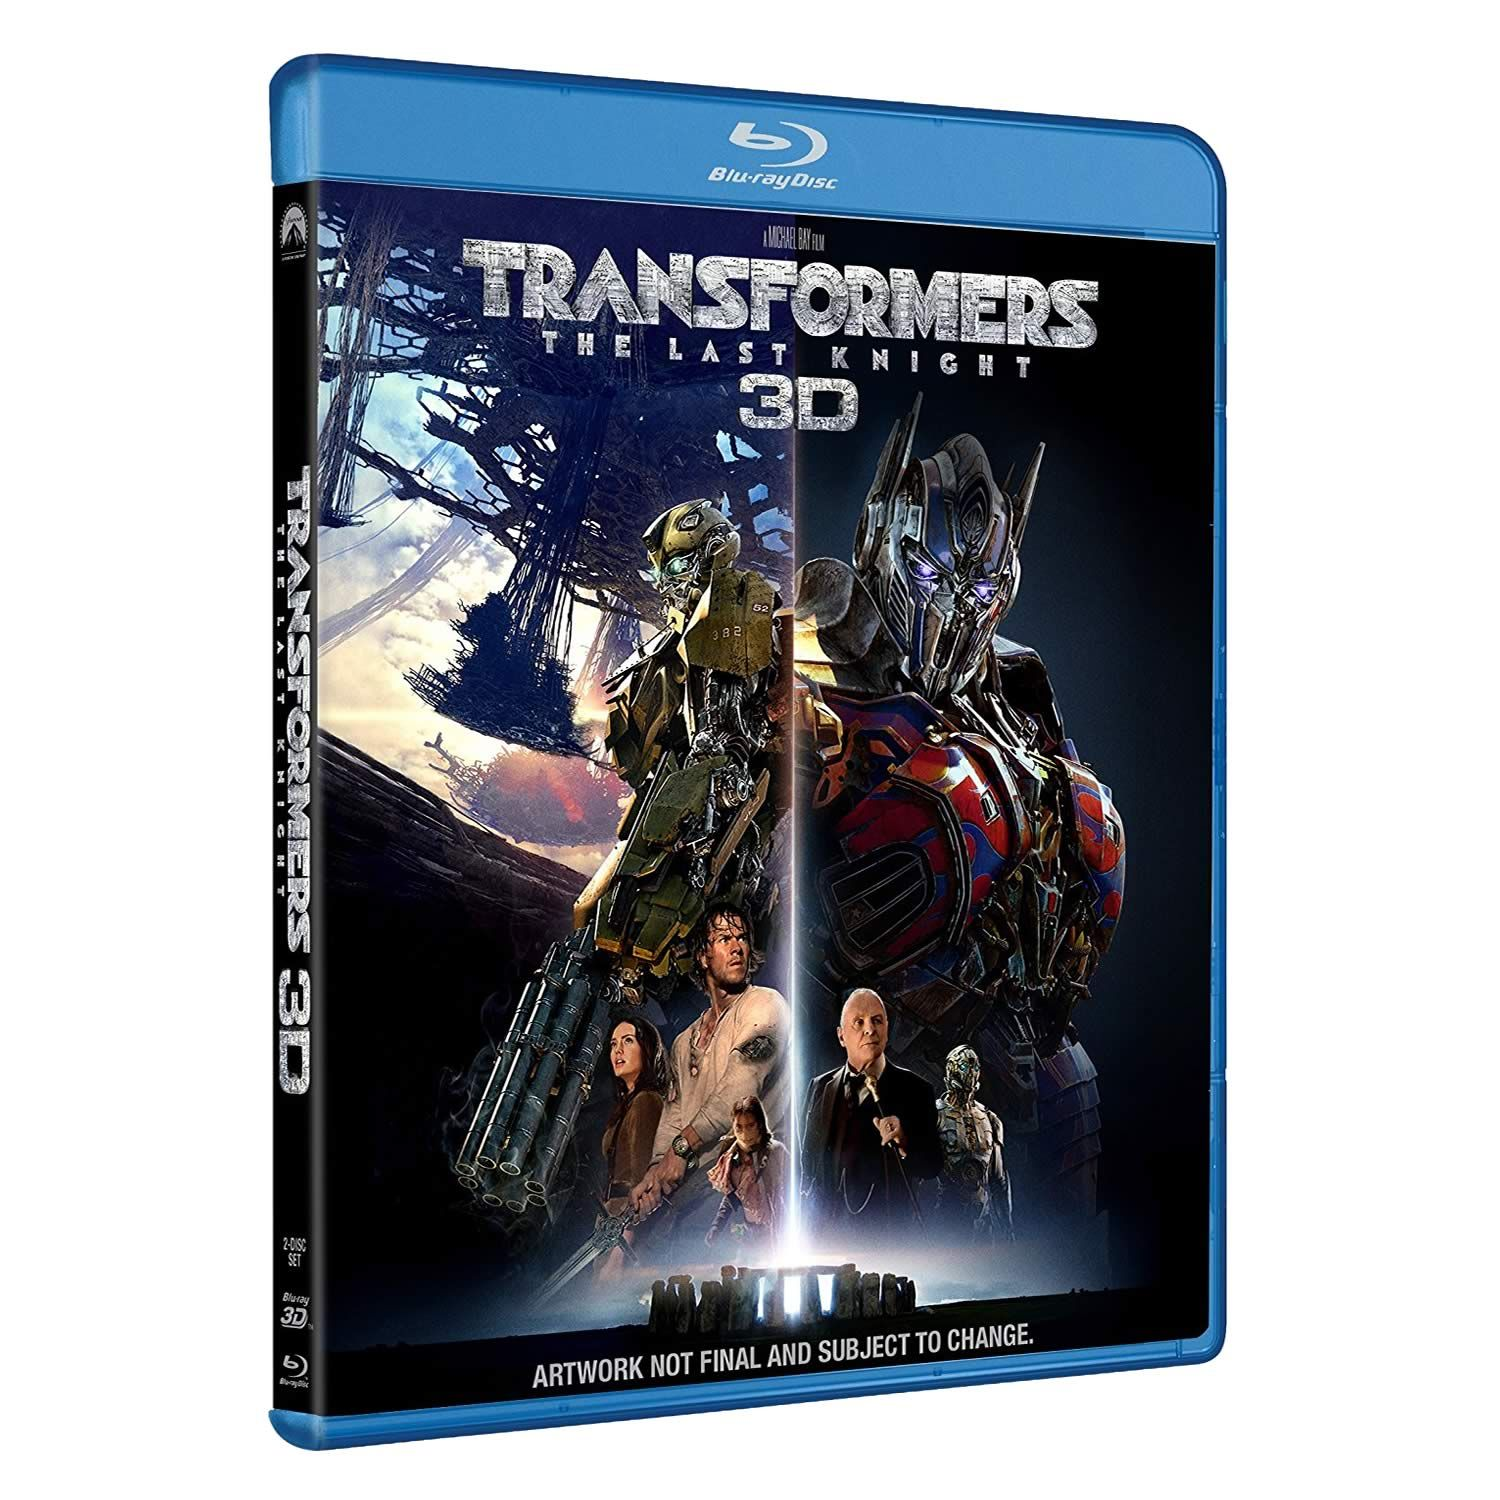 TRANSFORMERS 5: THE LAST KNIGHT 3D (BLU-RAY 3D/2D)